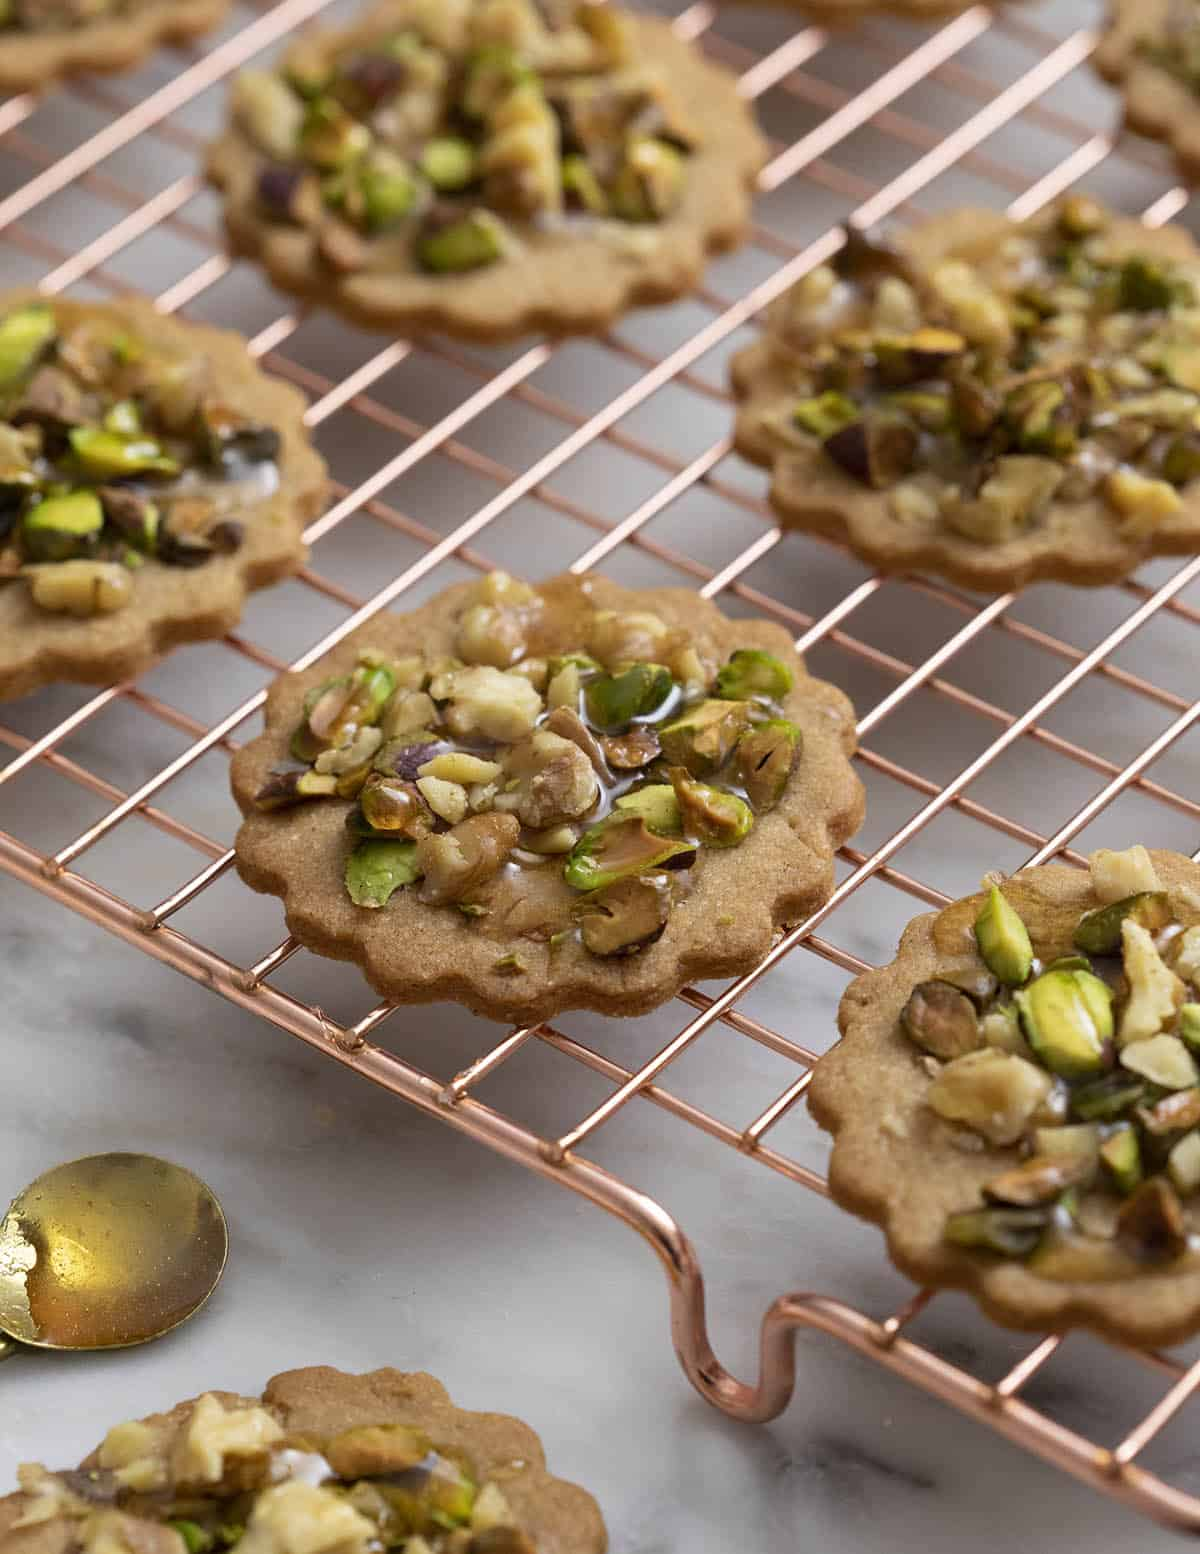 baklava cookies fresh out of the oven on a copper cooling rack.